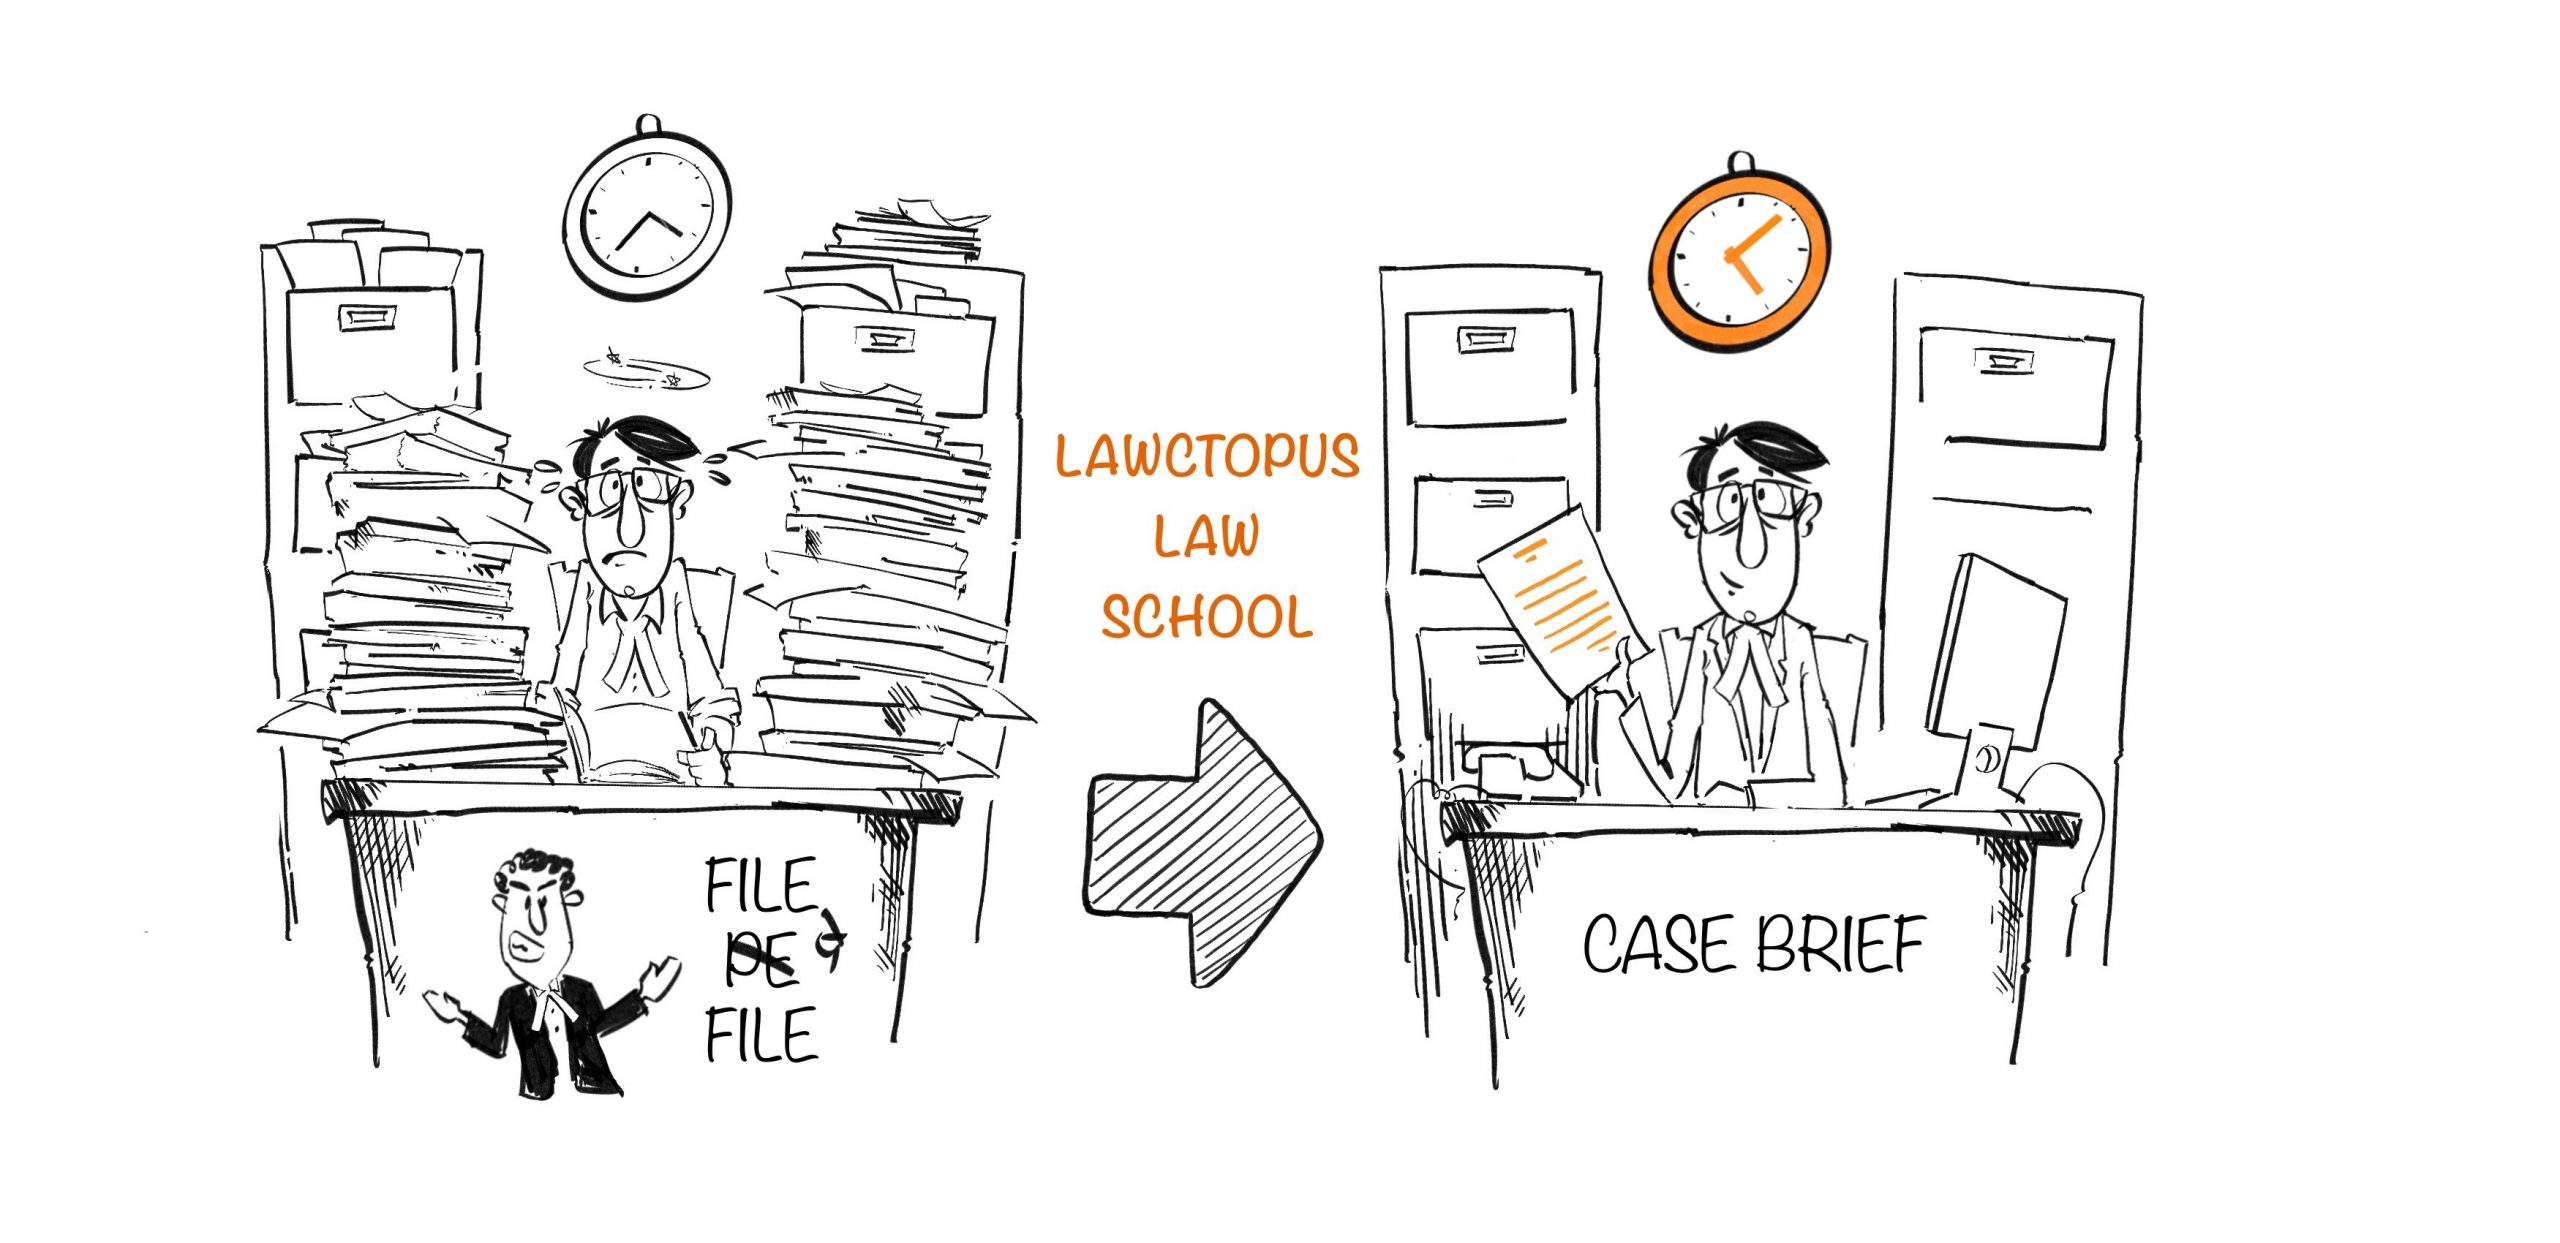 lawctopus online course on litigation: reading case files, making case briefs